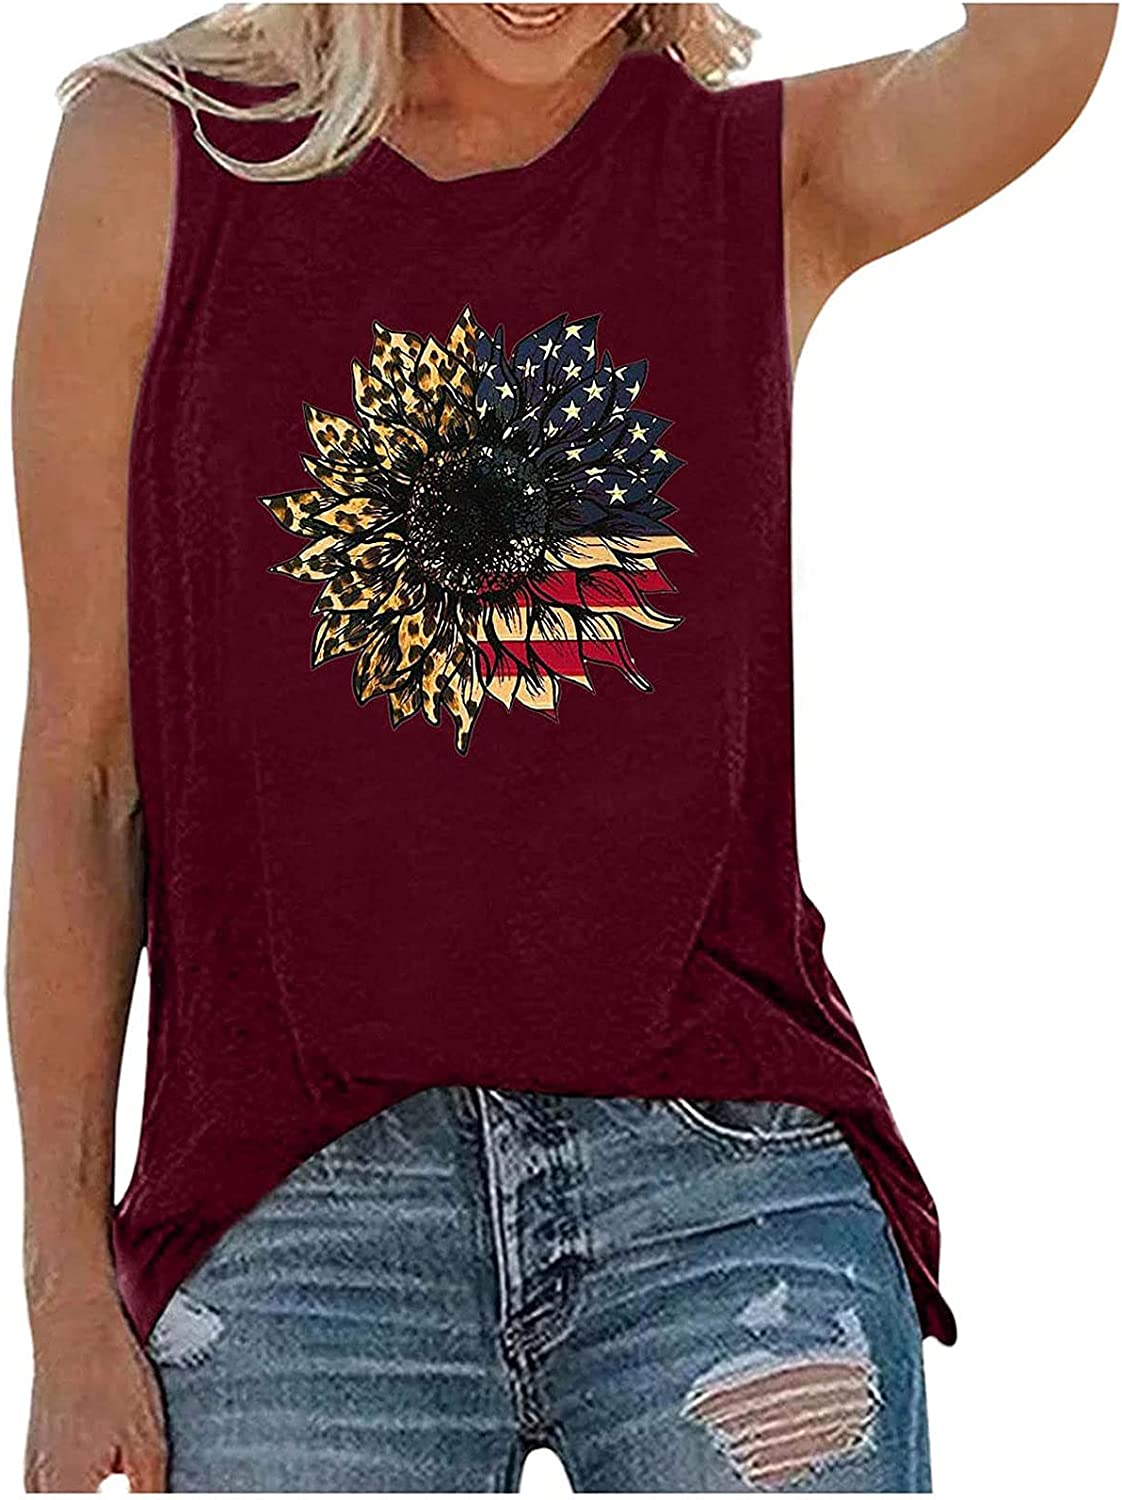 Pisexur Womens Plus Size Tops Independence Day S Crewneck Sale Industry No. 1 SALE% OFF T Tank